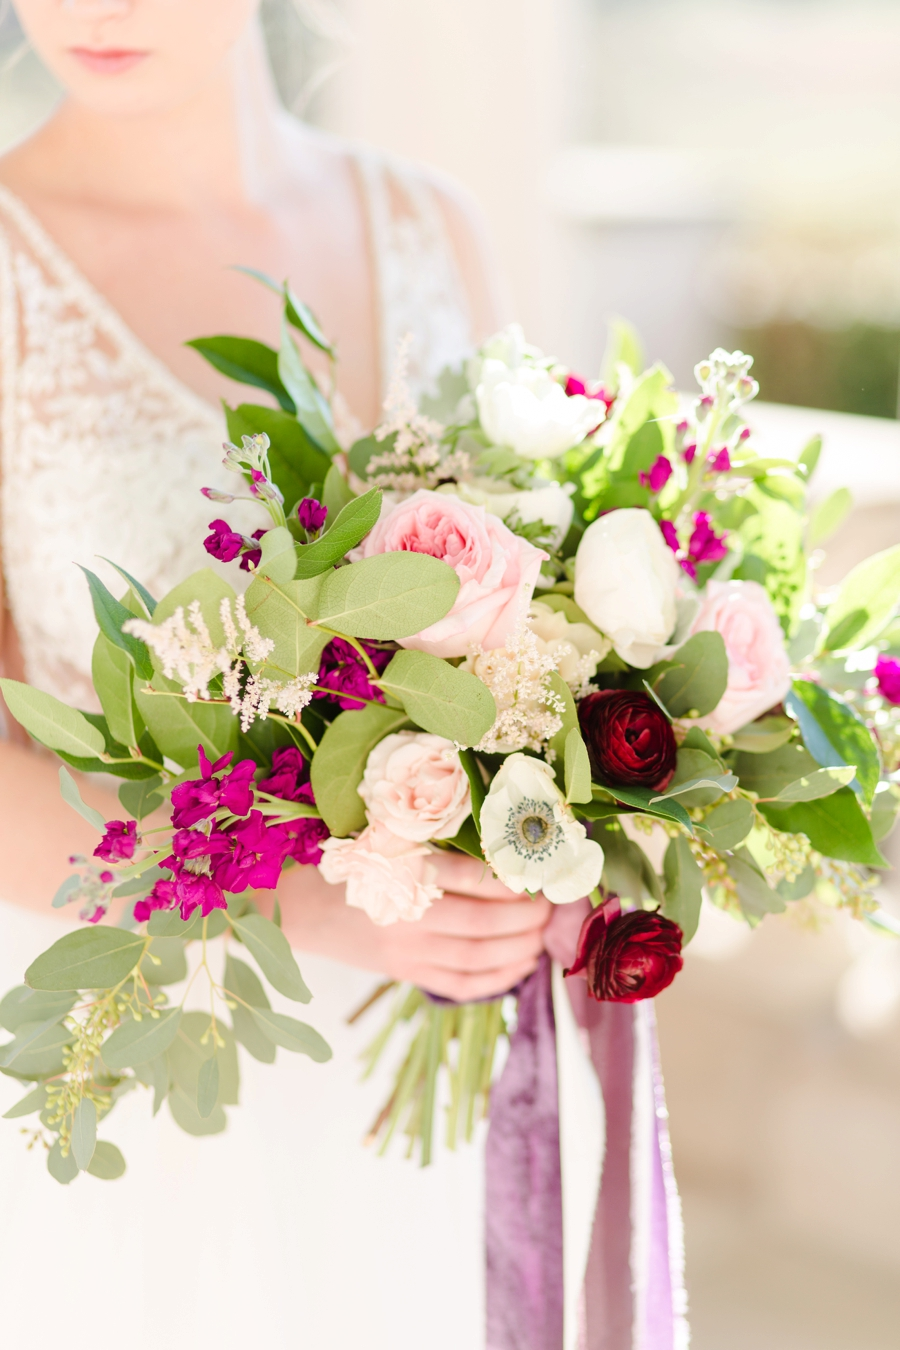 Elegant, Romantic Blush & Plum Wedding Ideas via TheELD.com